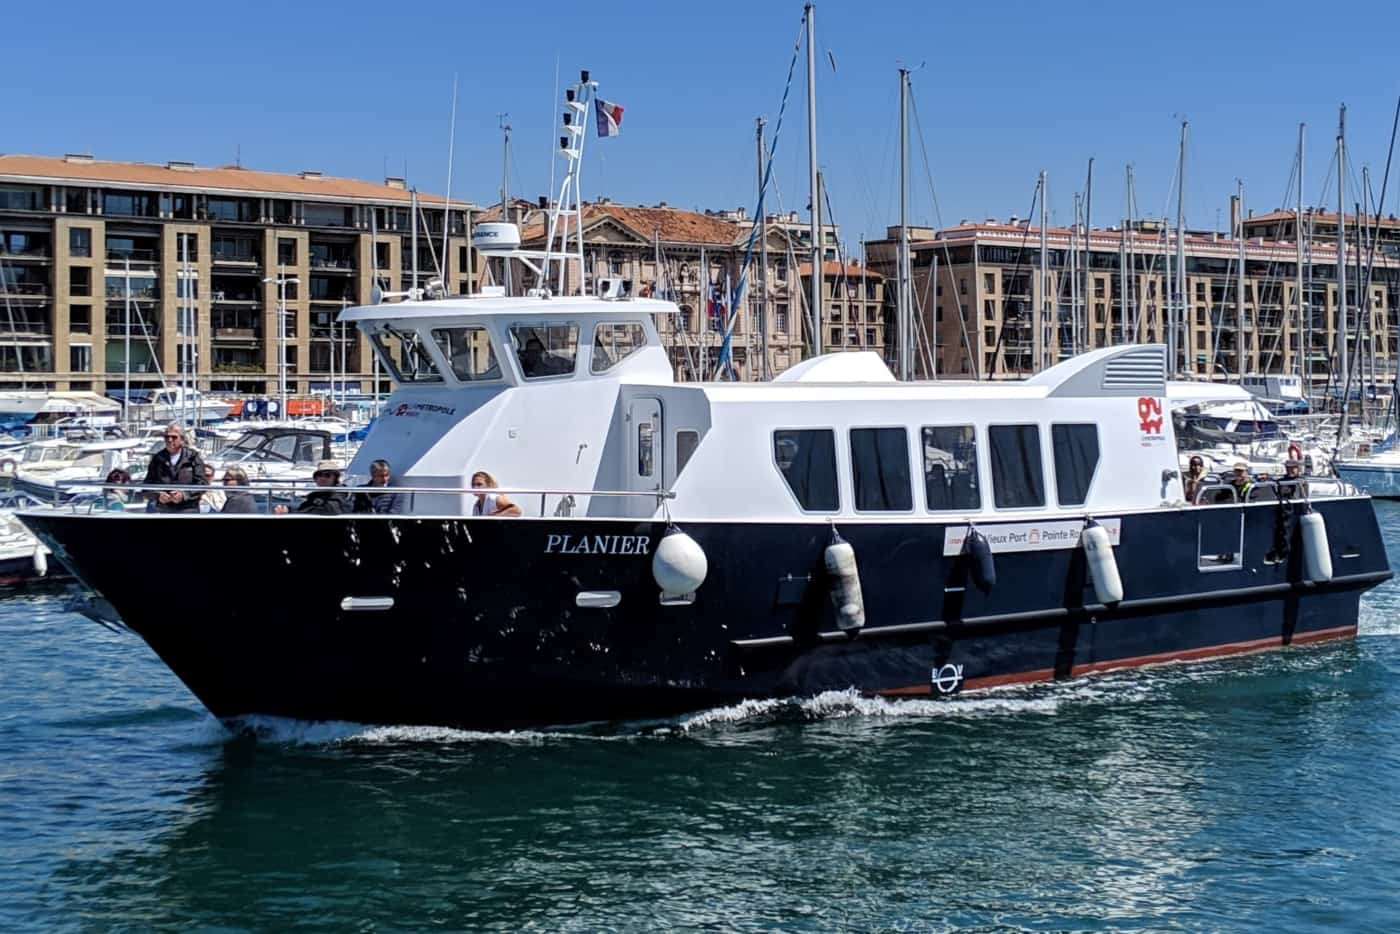 , Pointe Rouge, Estaque, Goudes, les navettes maritimes reprennent du service, Made in Marseille, Made in Marseille